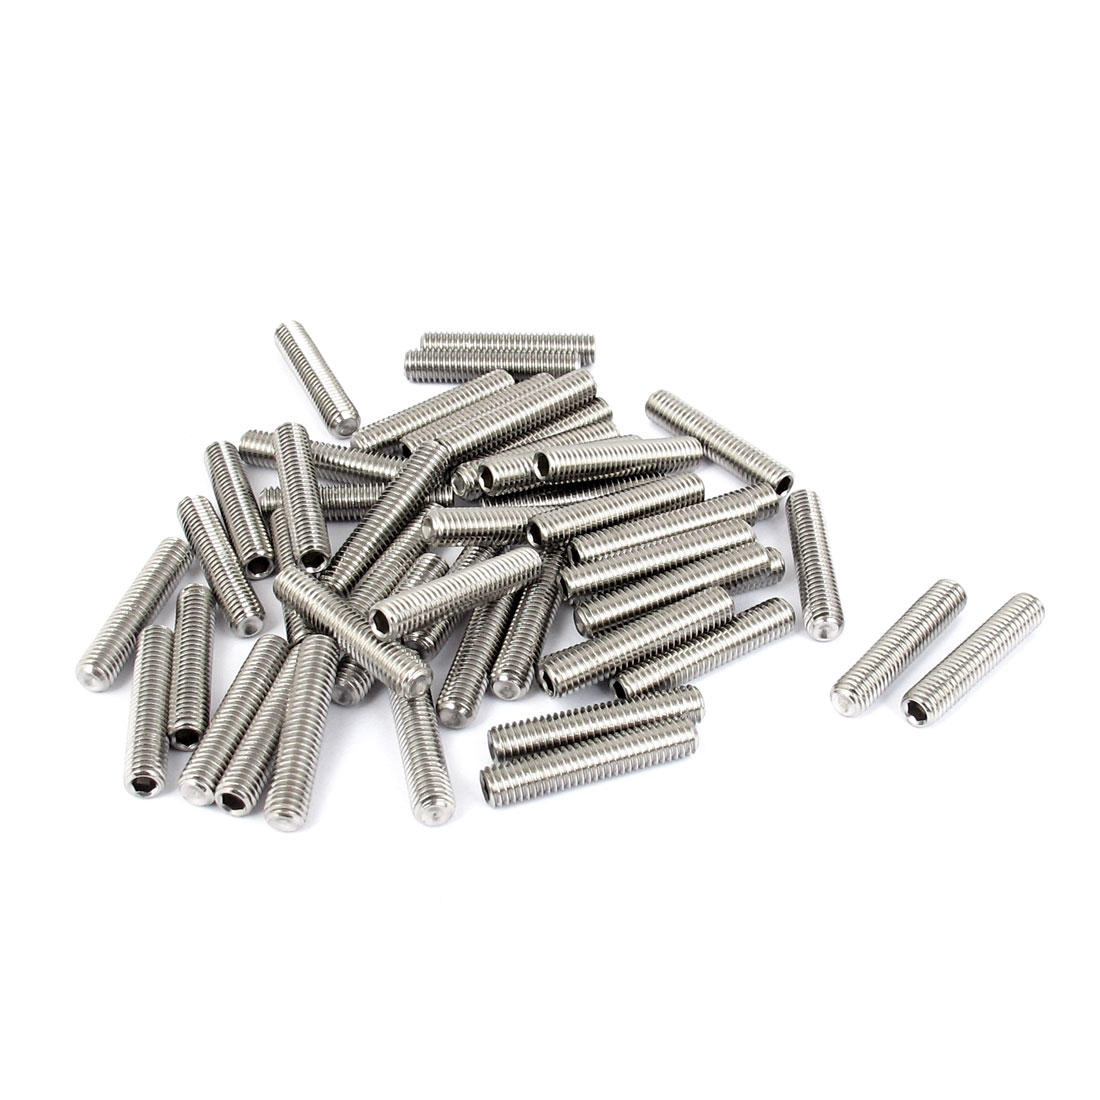 M5x25mm Stainless Steel Hex Socket Set Cap Point Grub Screws Silver Tone 50pcs